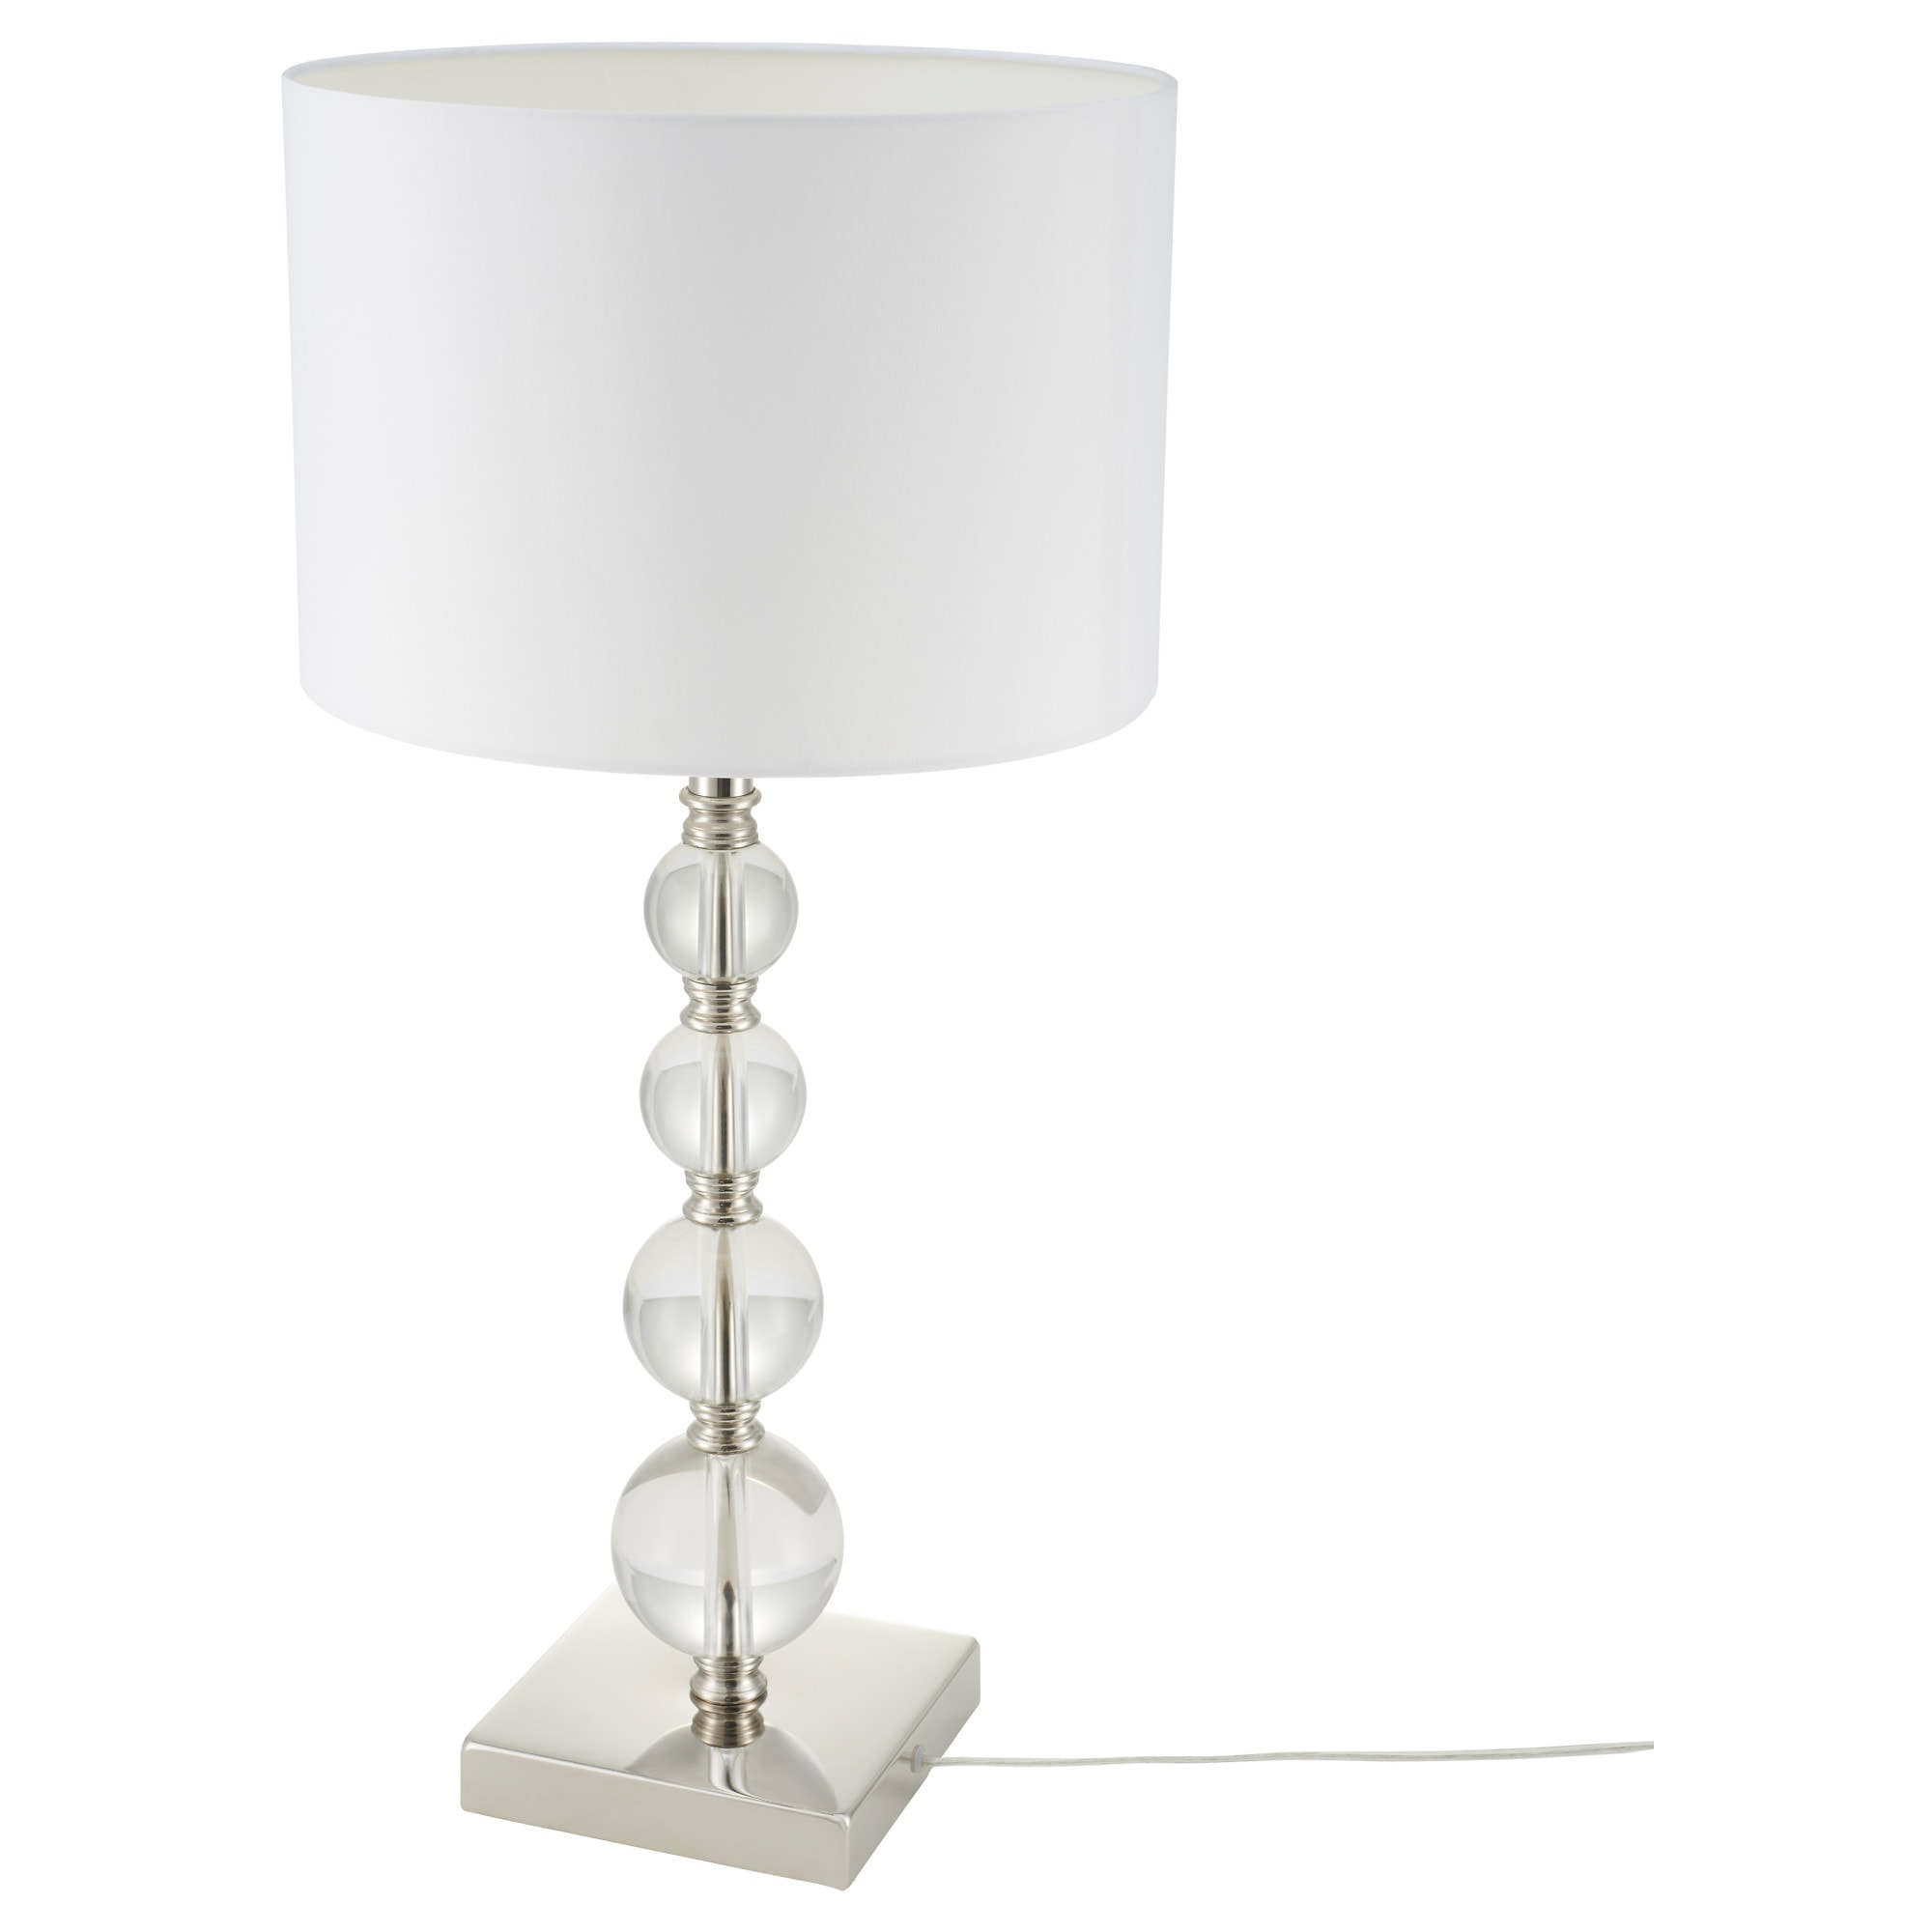 ROXMO Table Lamp   IKEA